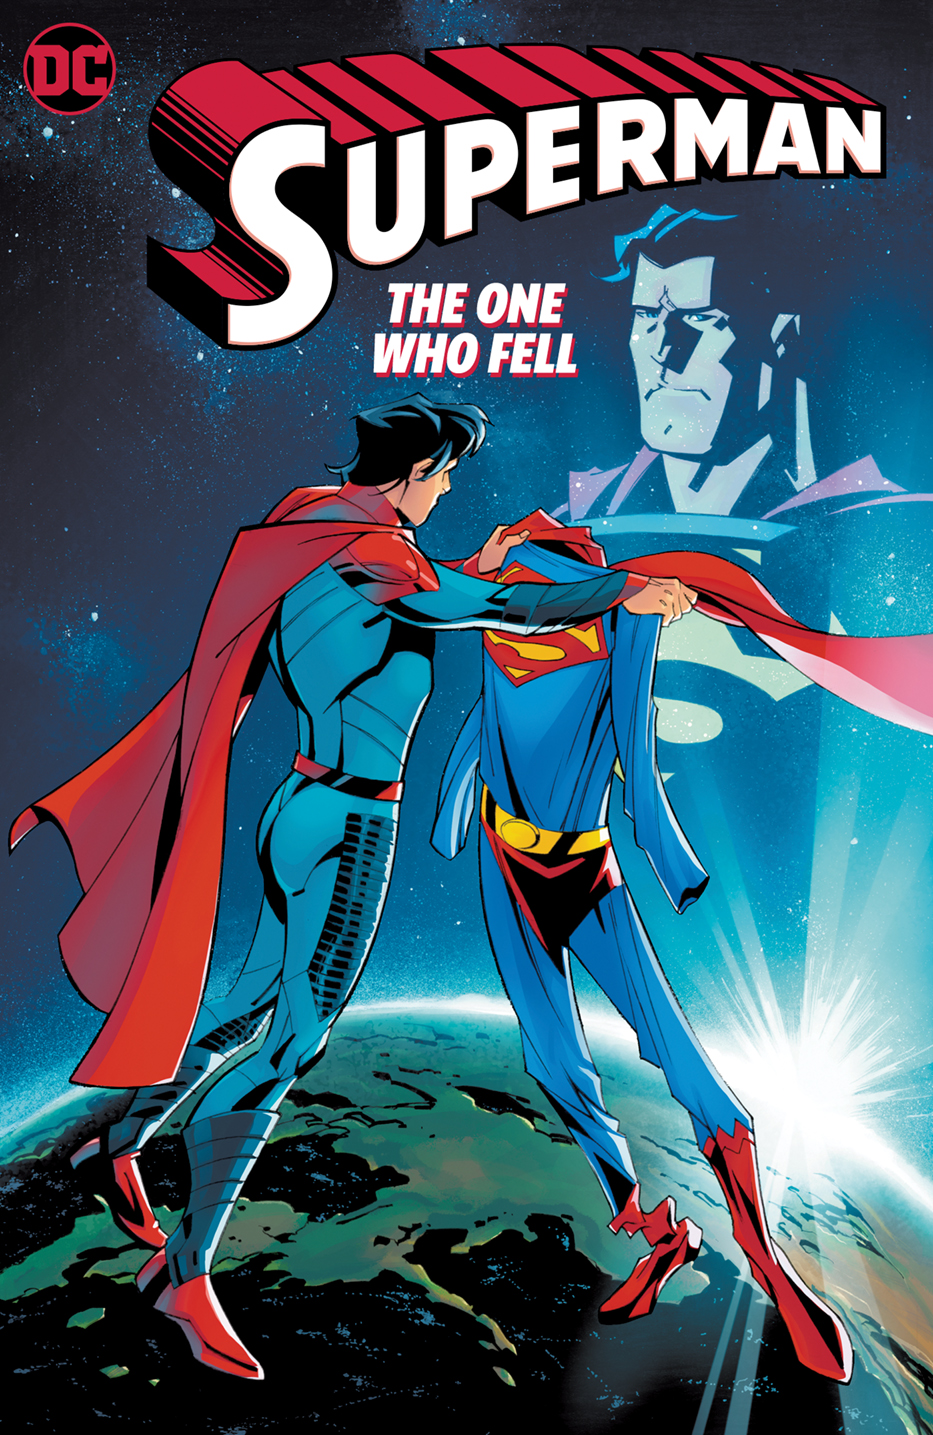 superman vol1 adv Recent Comic Cover Updates For The Week Ending 2021 07 23